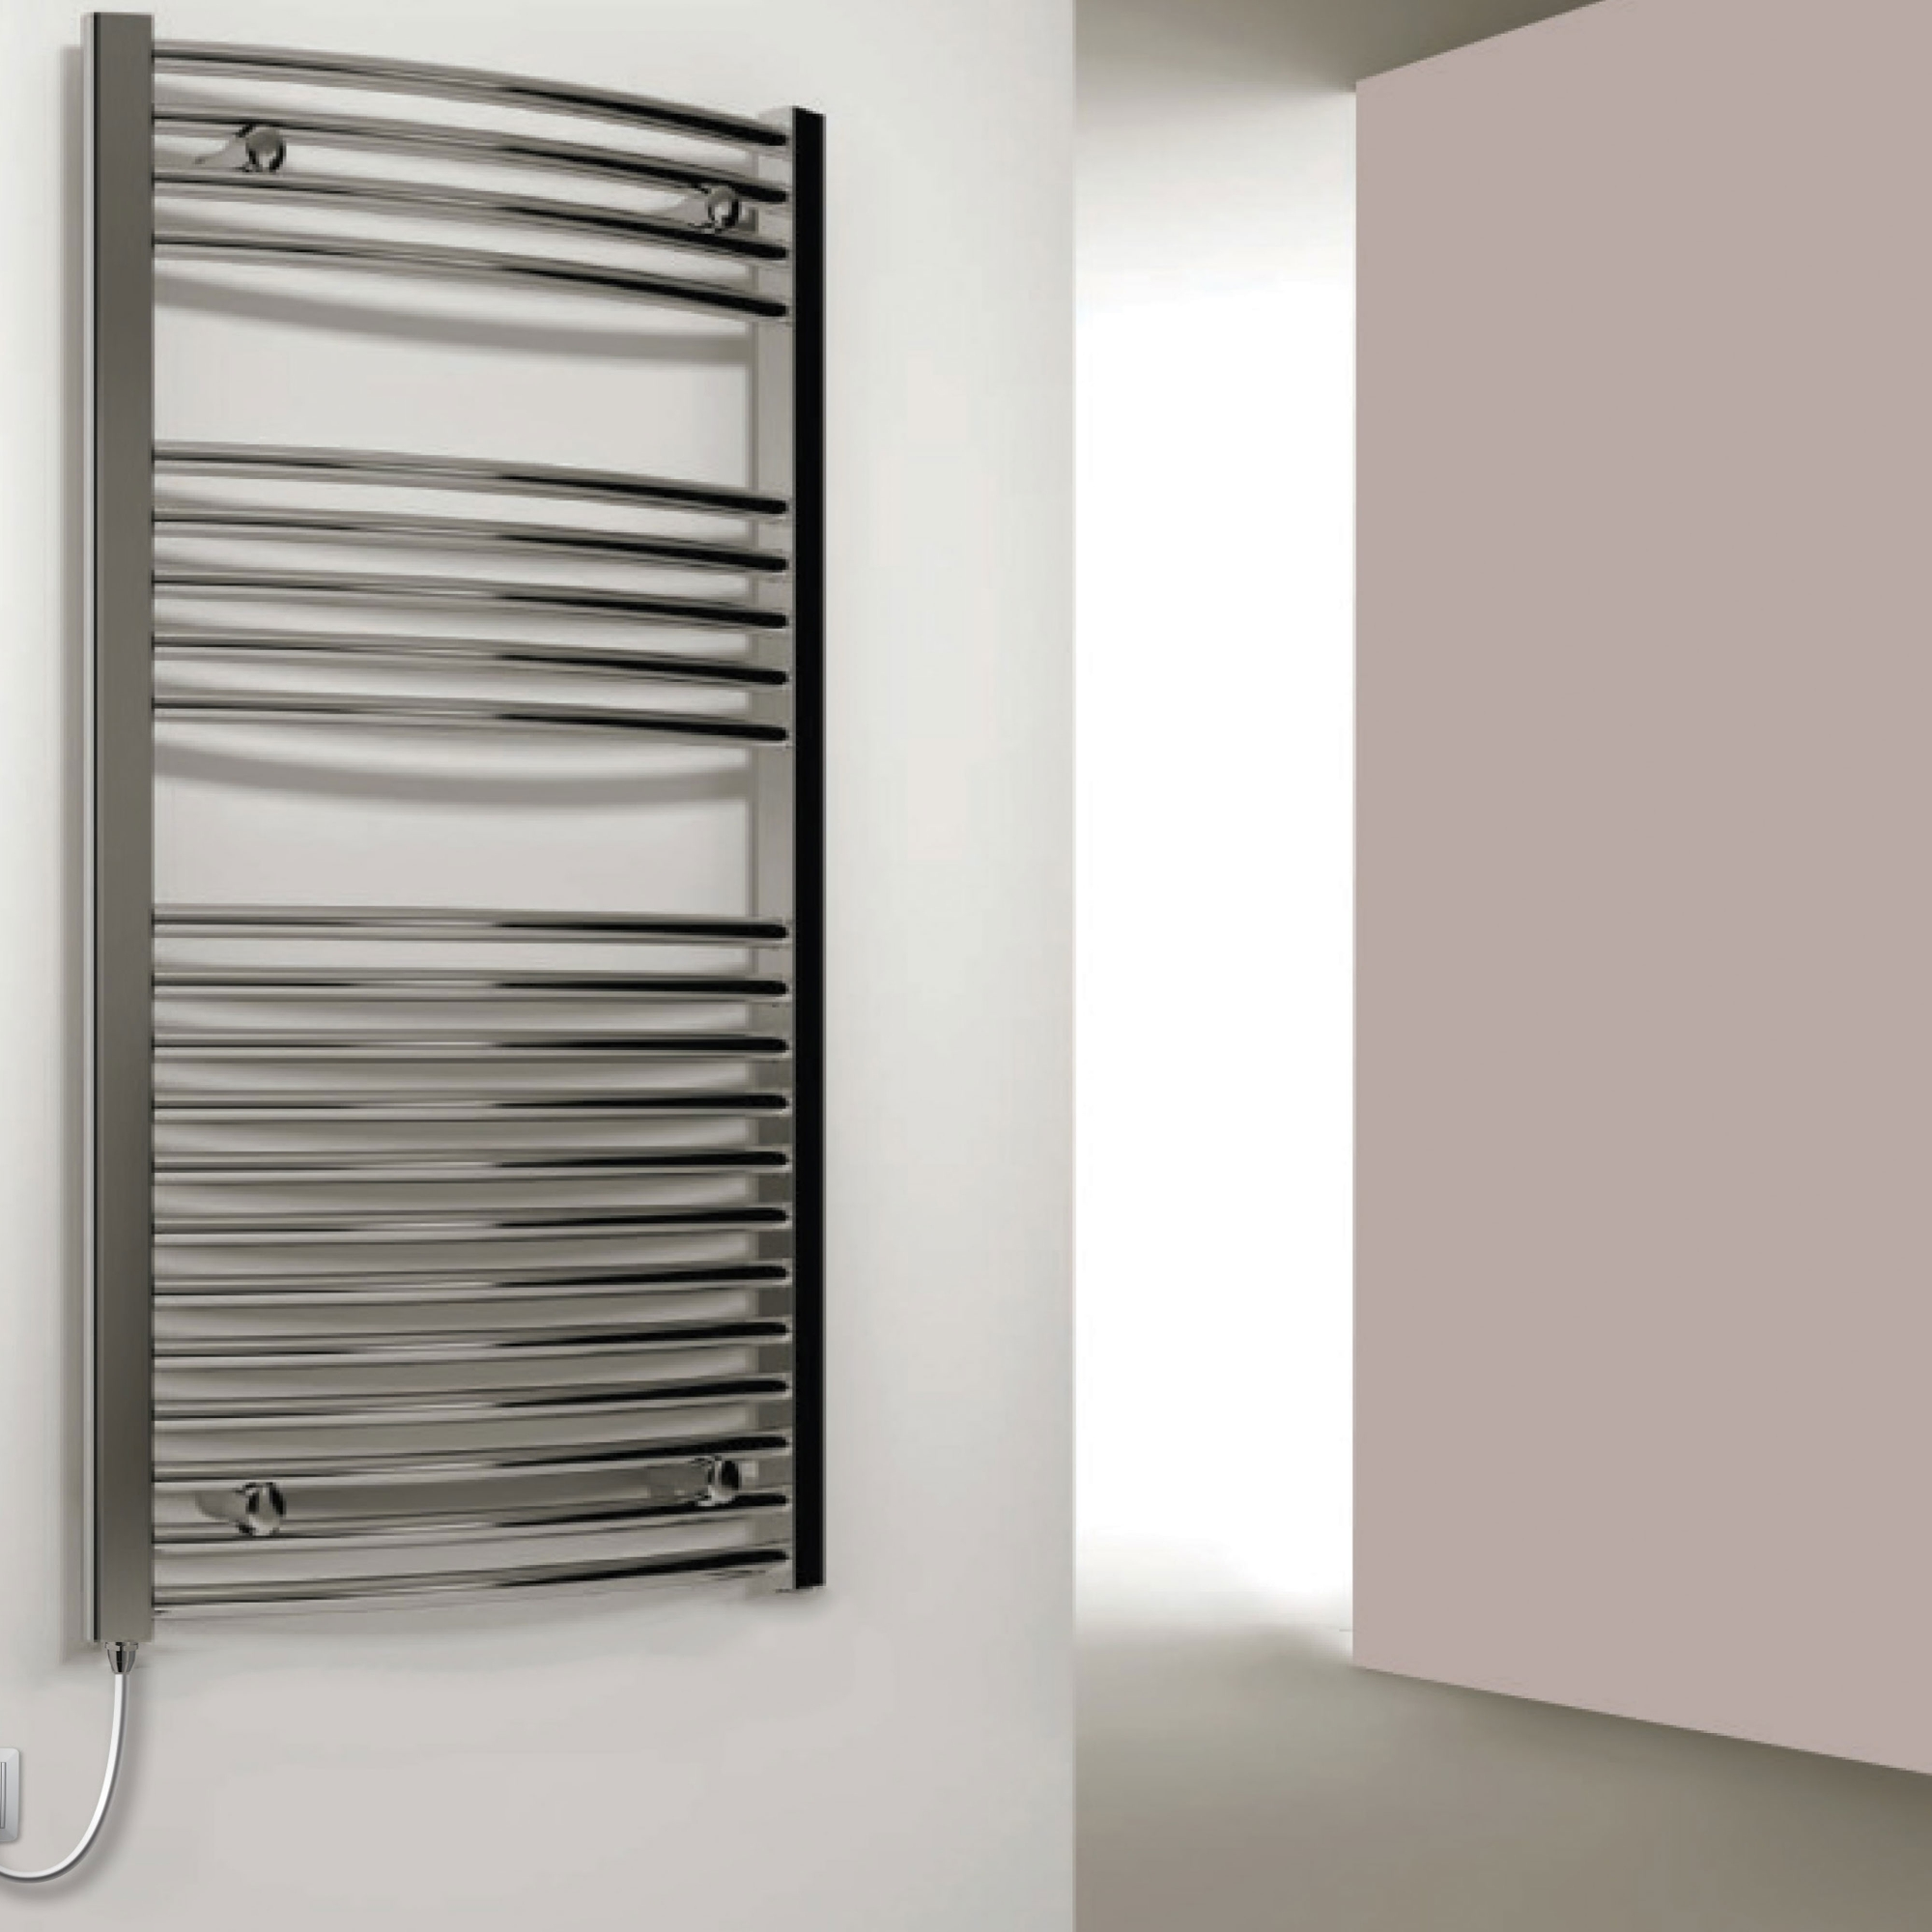 Reina Capo Curved Thermostatic Electric Heated Towel Rail 1200mm H x 600mm W Chrome-0